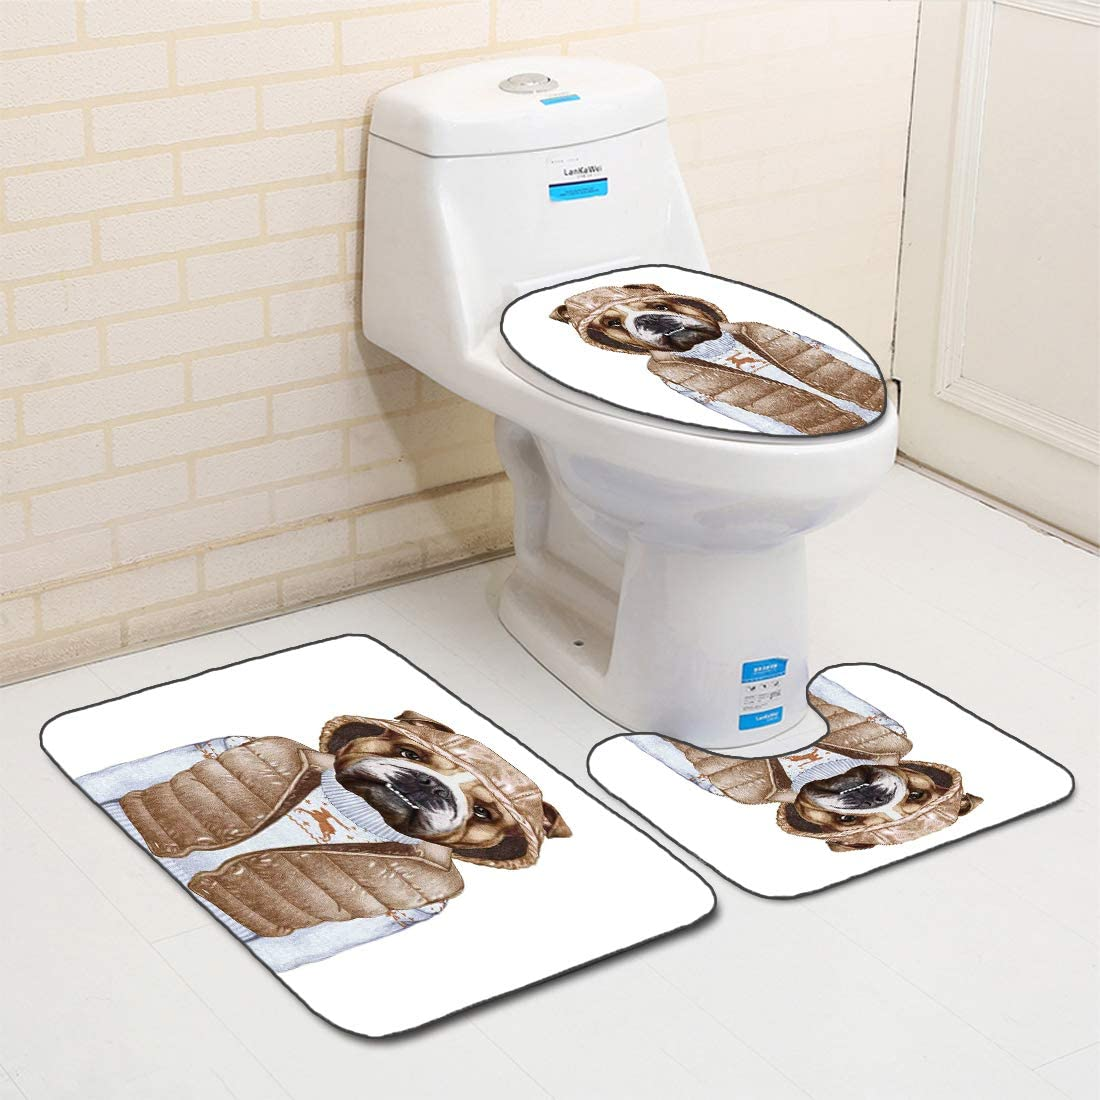 3Pcs Non-Slip Bathroom Rug Toilet Seat Lid Cover Set Bulldog Soft Skidproof Bath Mat Illustration of Urban Puppy as a Human in a Down Vest and Xmas Sweater,Pale Brown Baby Blue Absorbent Doormat Bedro